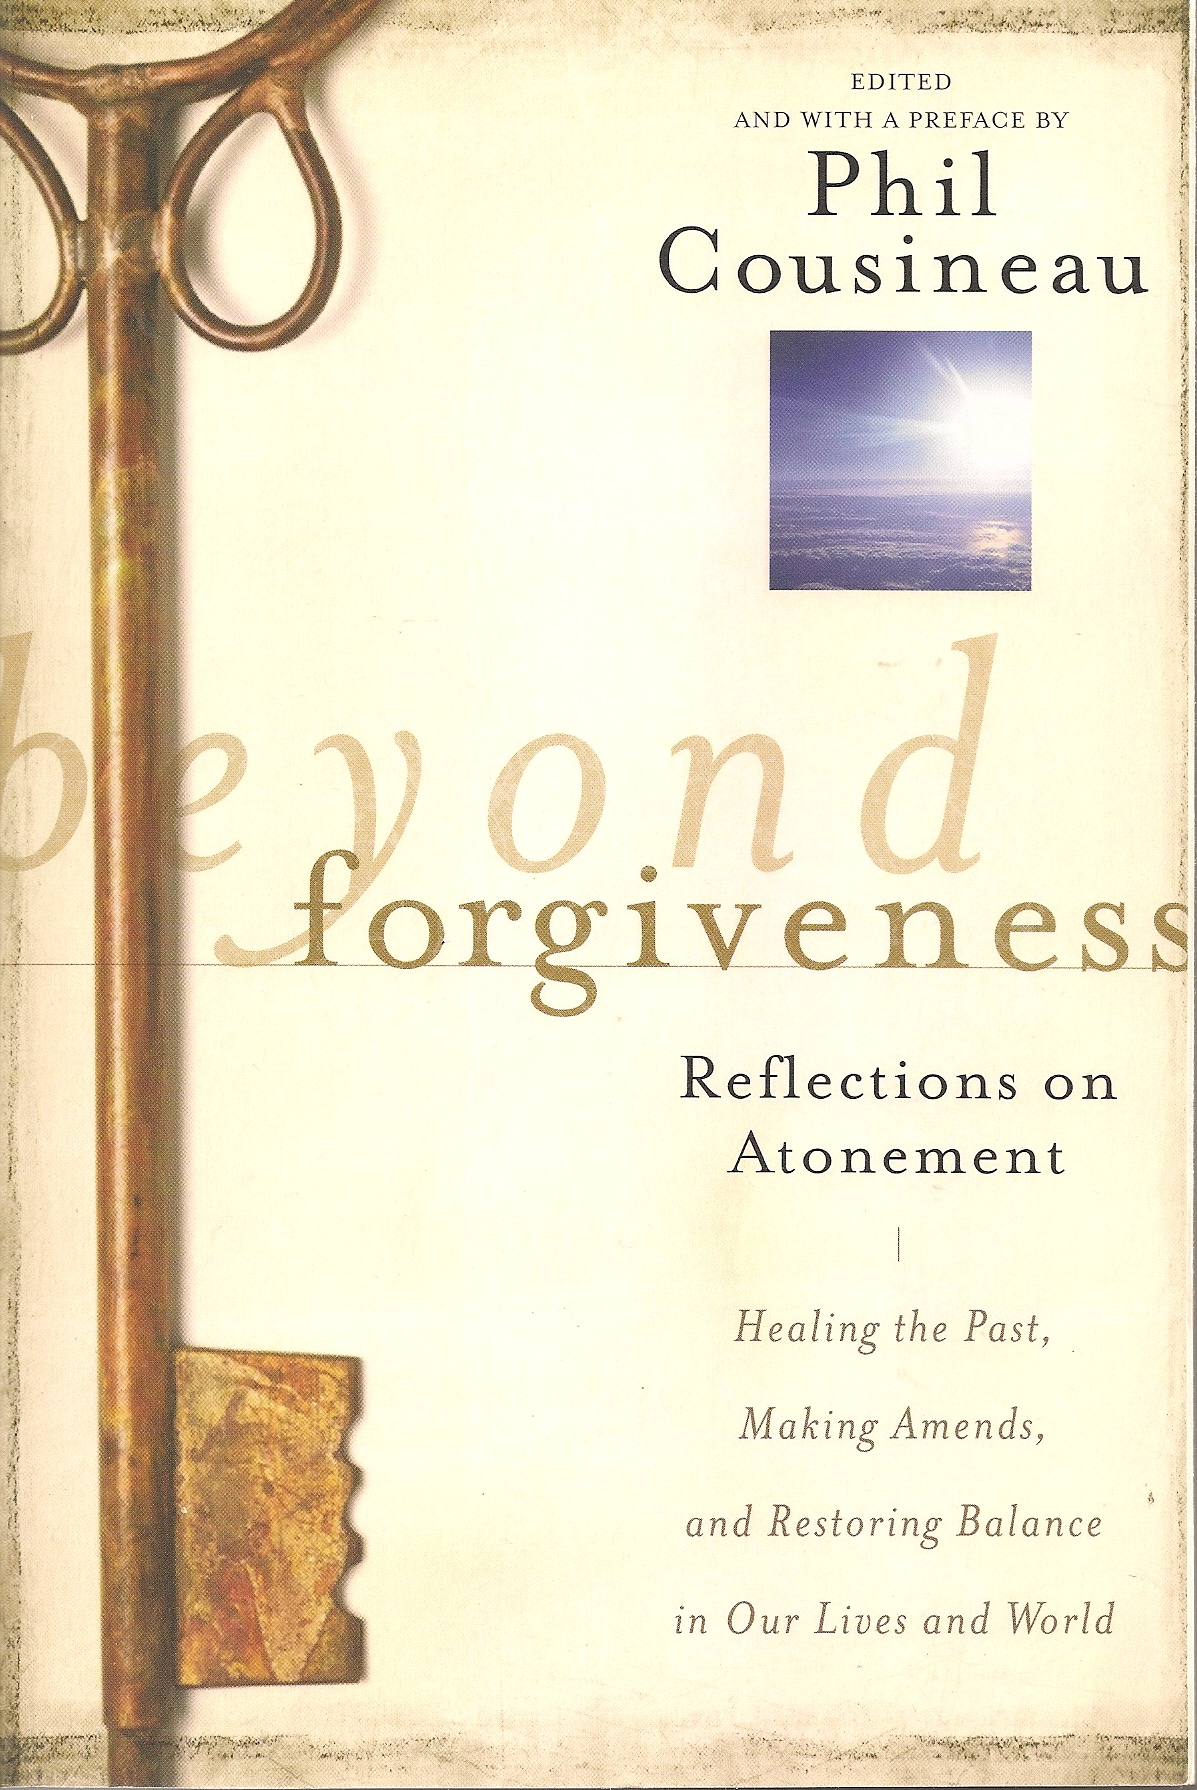 beyond forgiveness book jacket. author phil cousineau